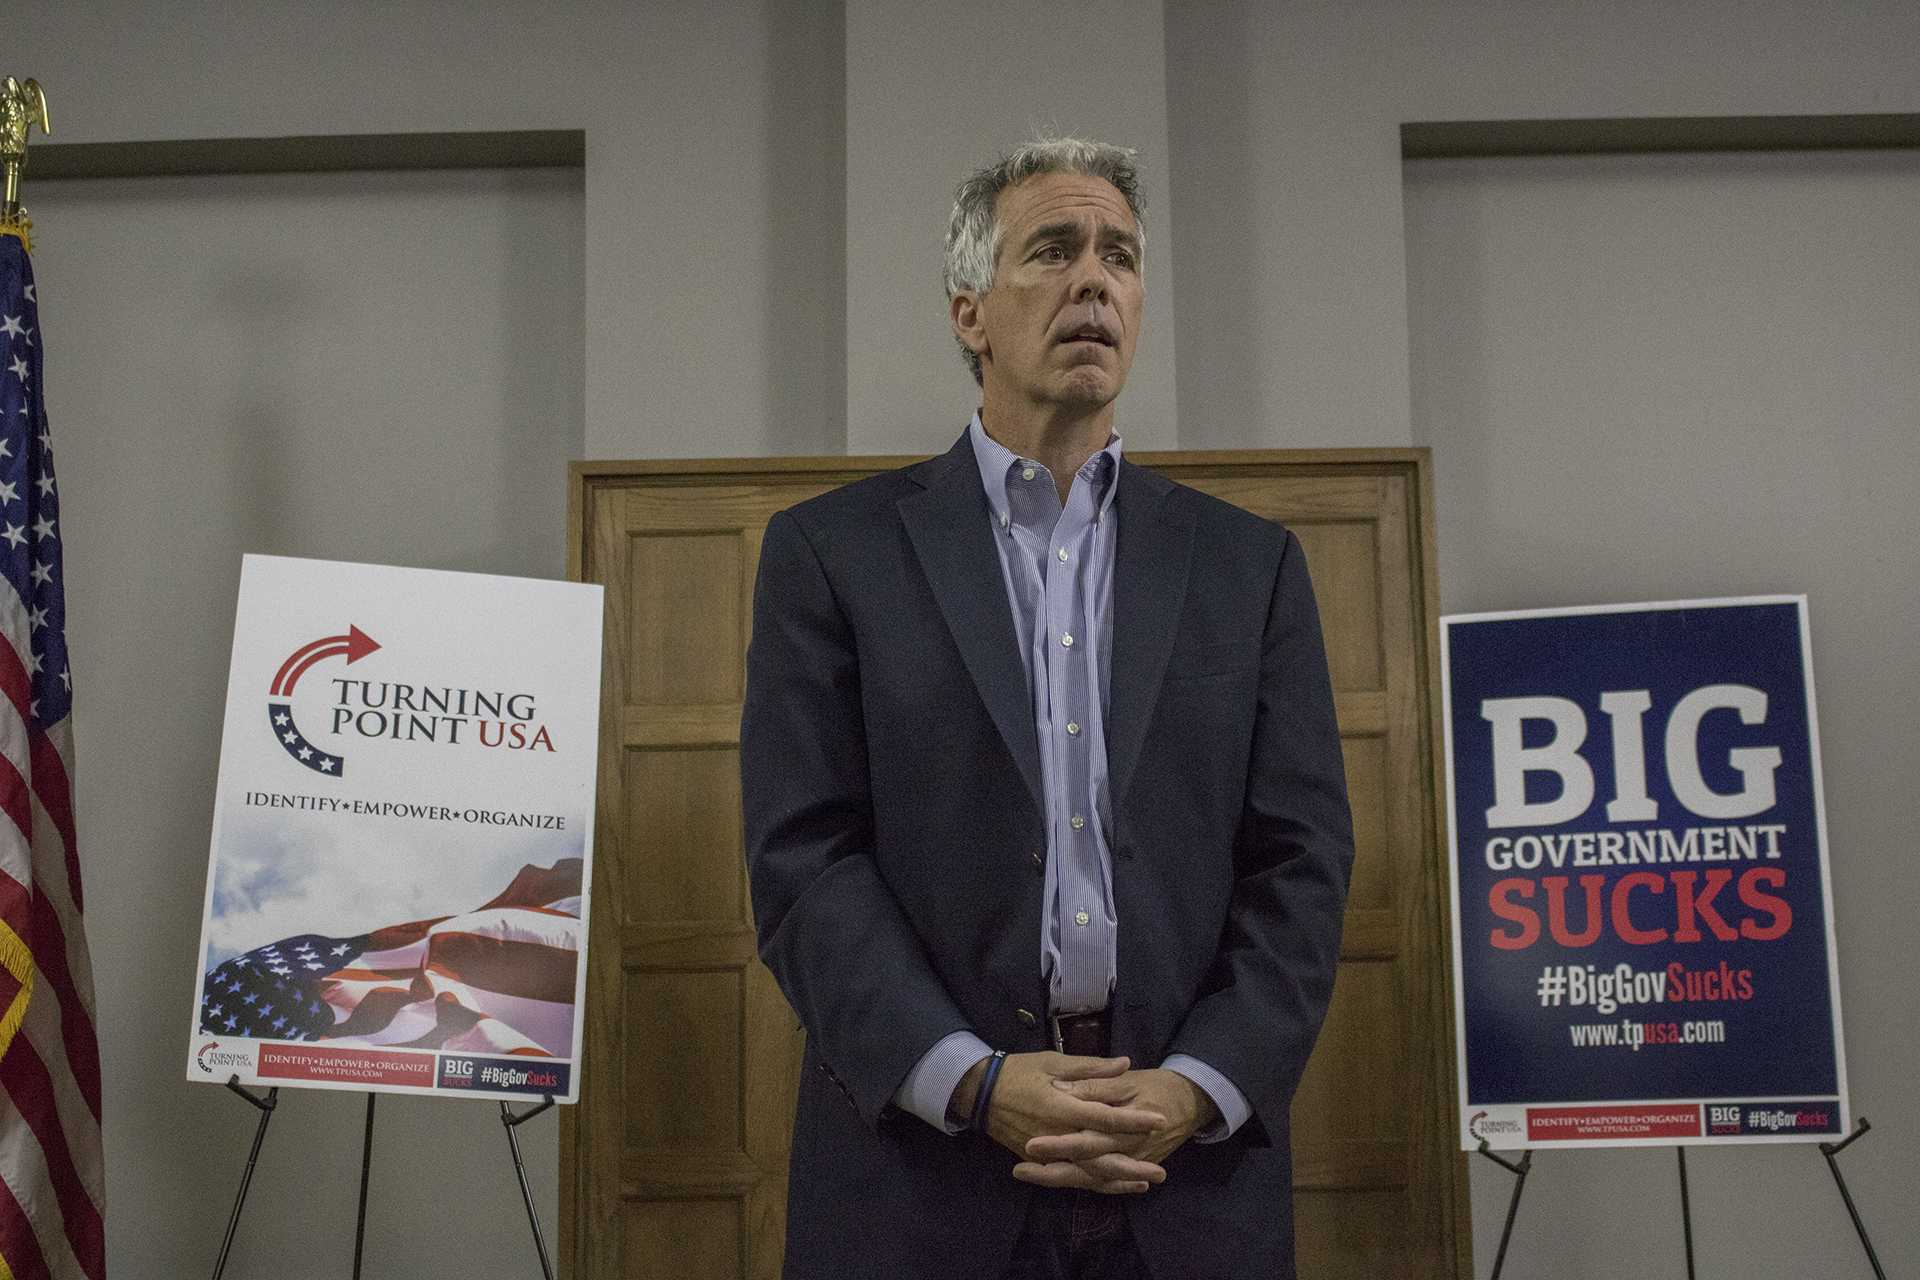 Joe Walsh speaks at the IMU on Tuesday, October 17, 2017. Walsh presented about the states of both major political parties and background regarding the presidential election. (Shivansh Ahuja/The Daily Iowan)